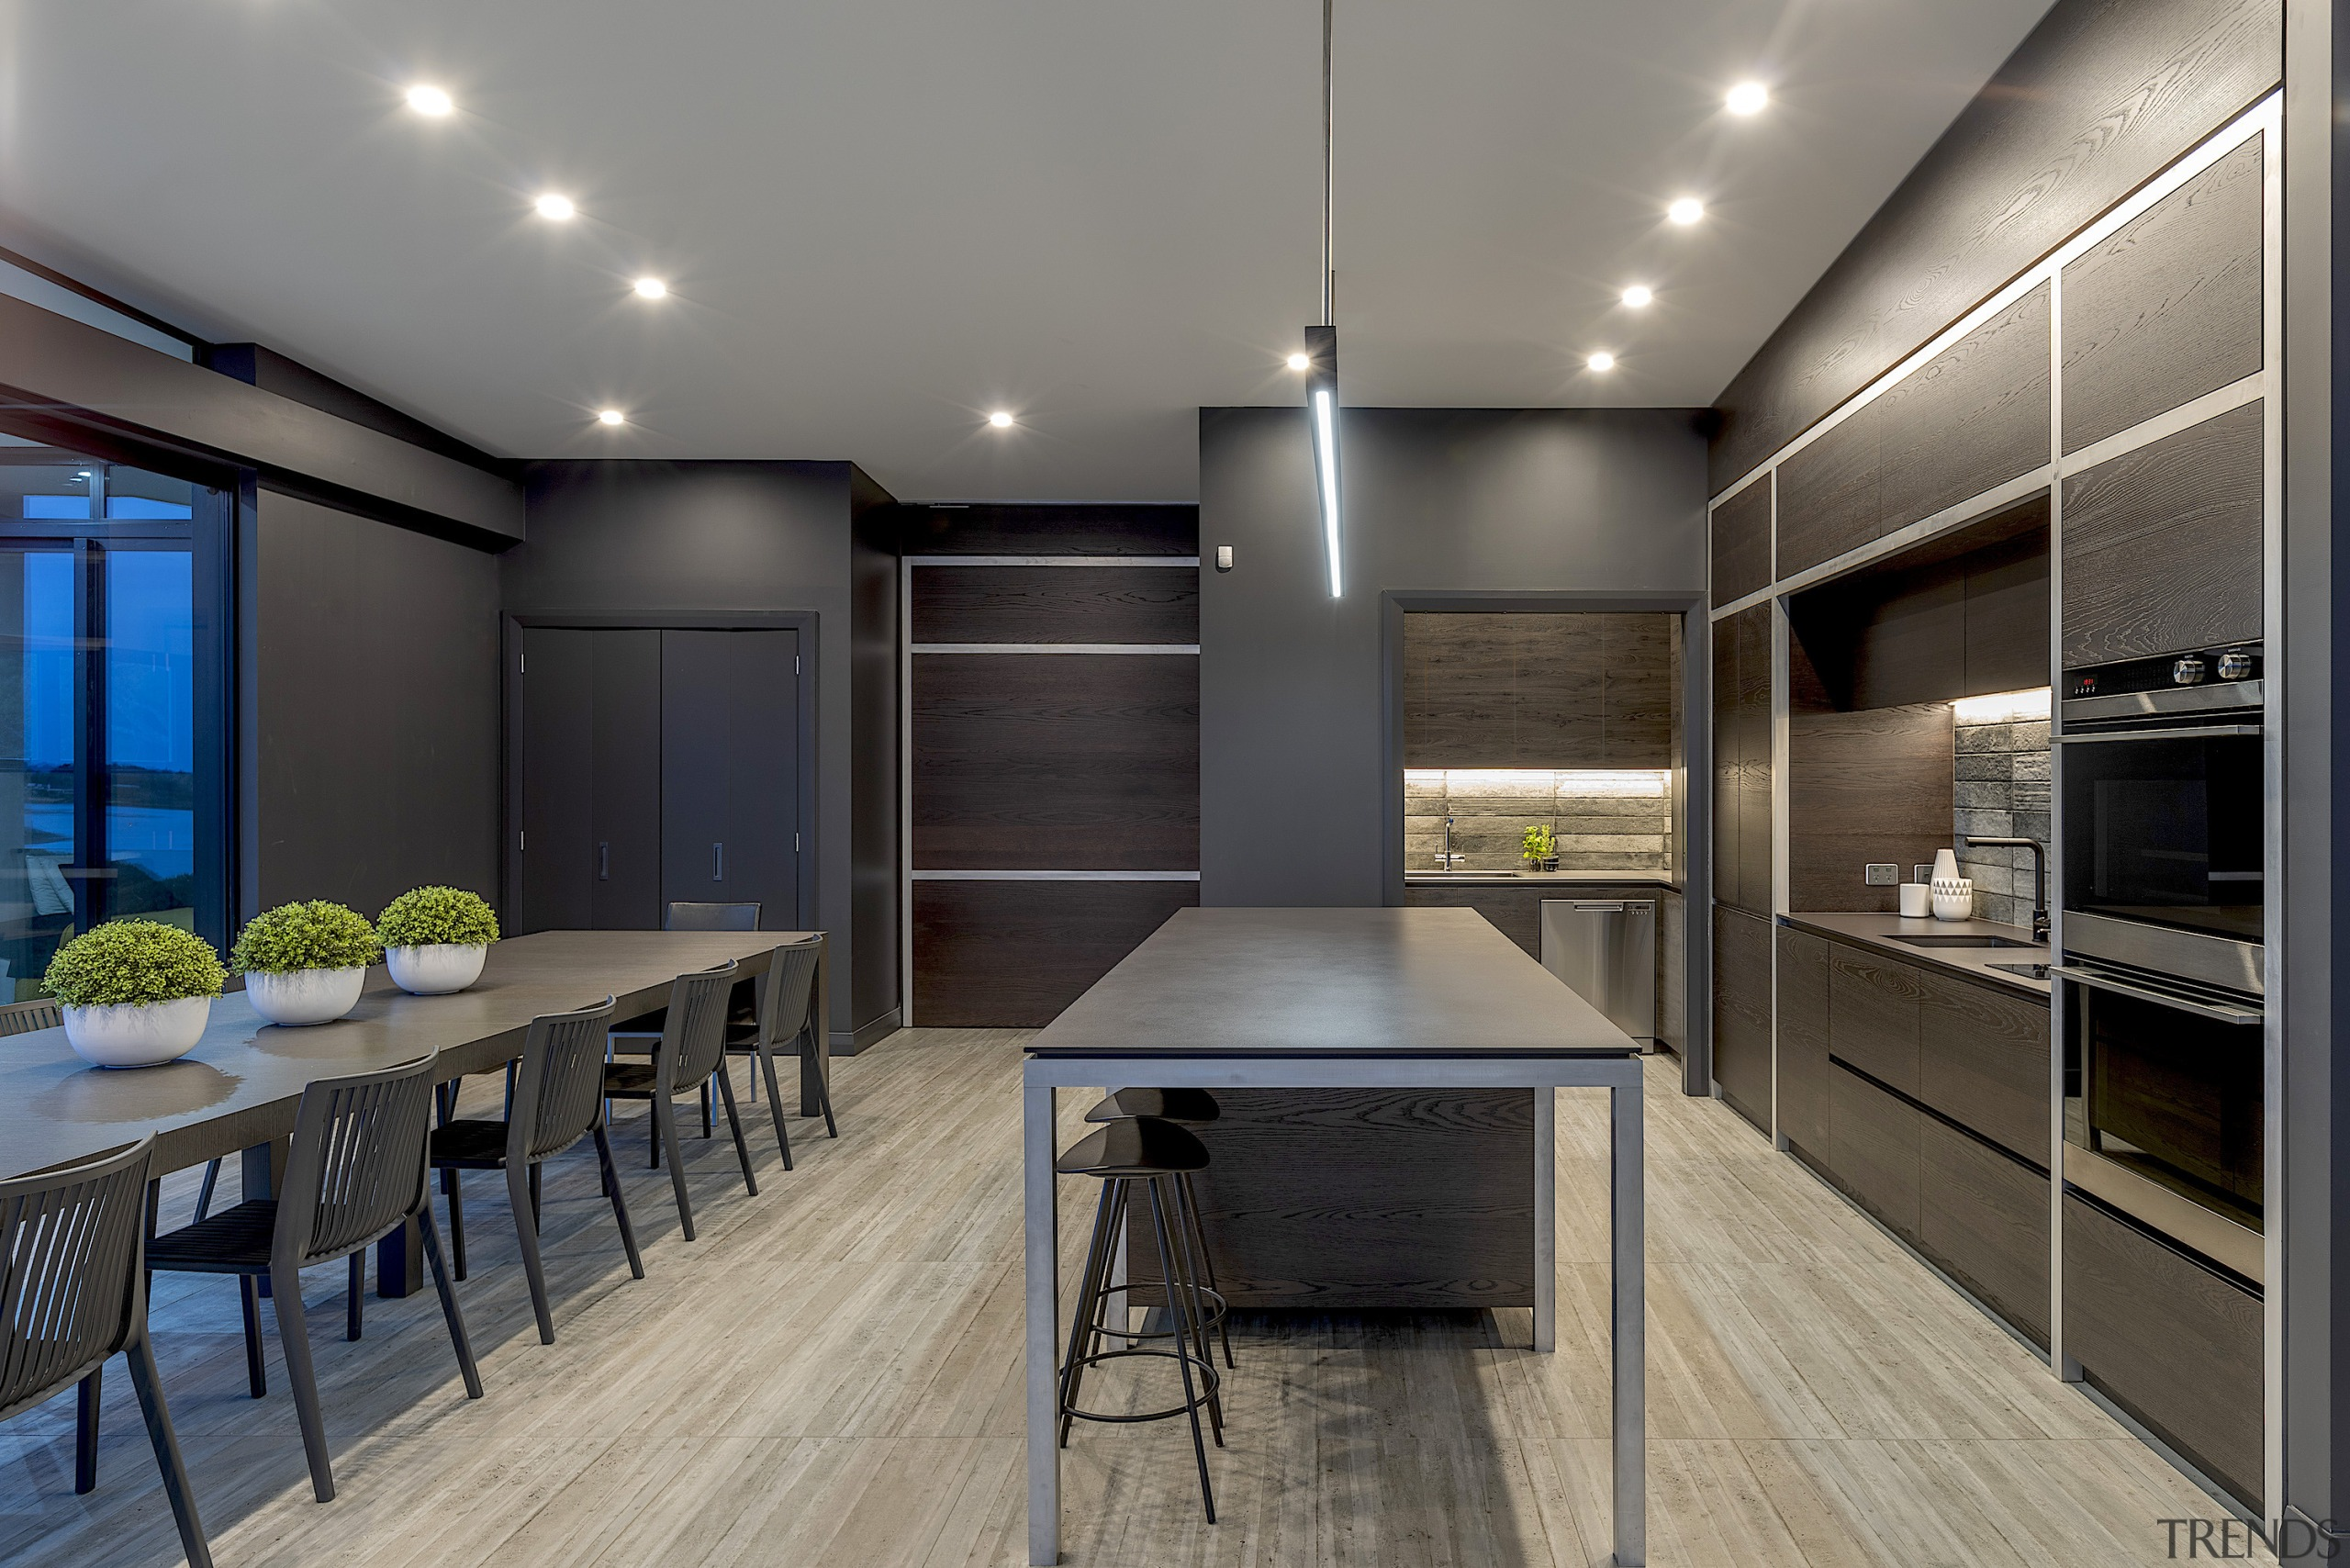 This Cube Dentro-designed and built kitchen had to gray, black